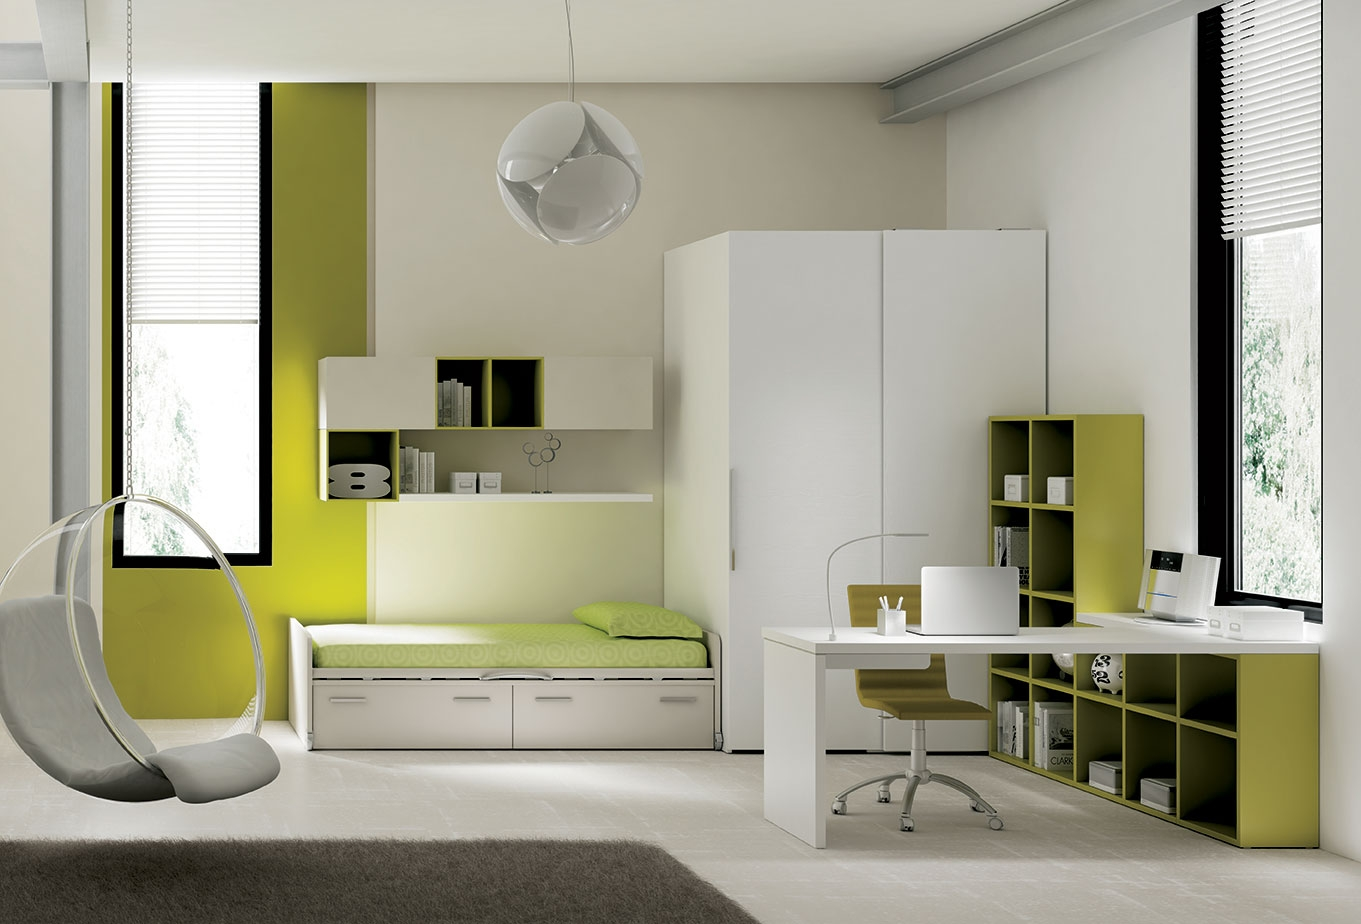 chambre ado avec lit avec rangement moretti compact so. Black Bedroom Furniture Sets. Home Design Ideas